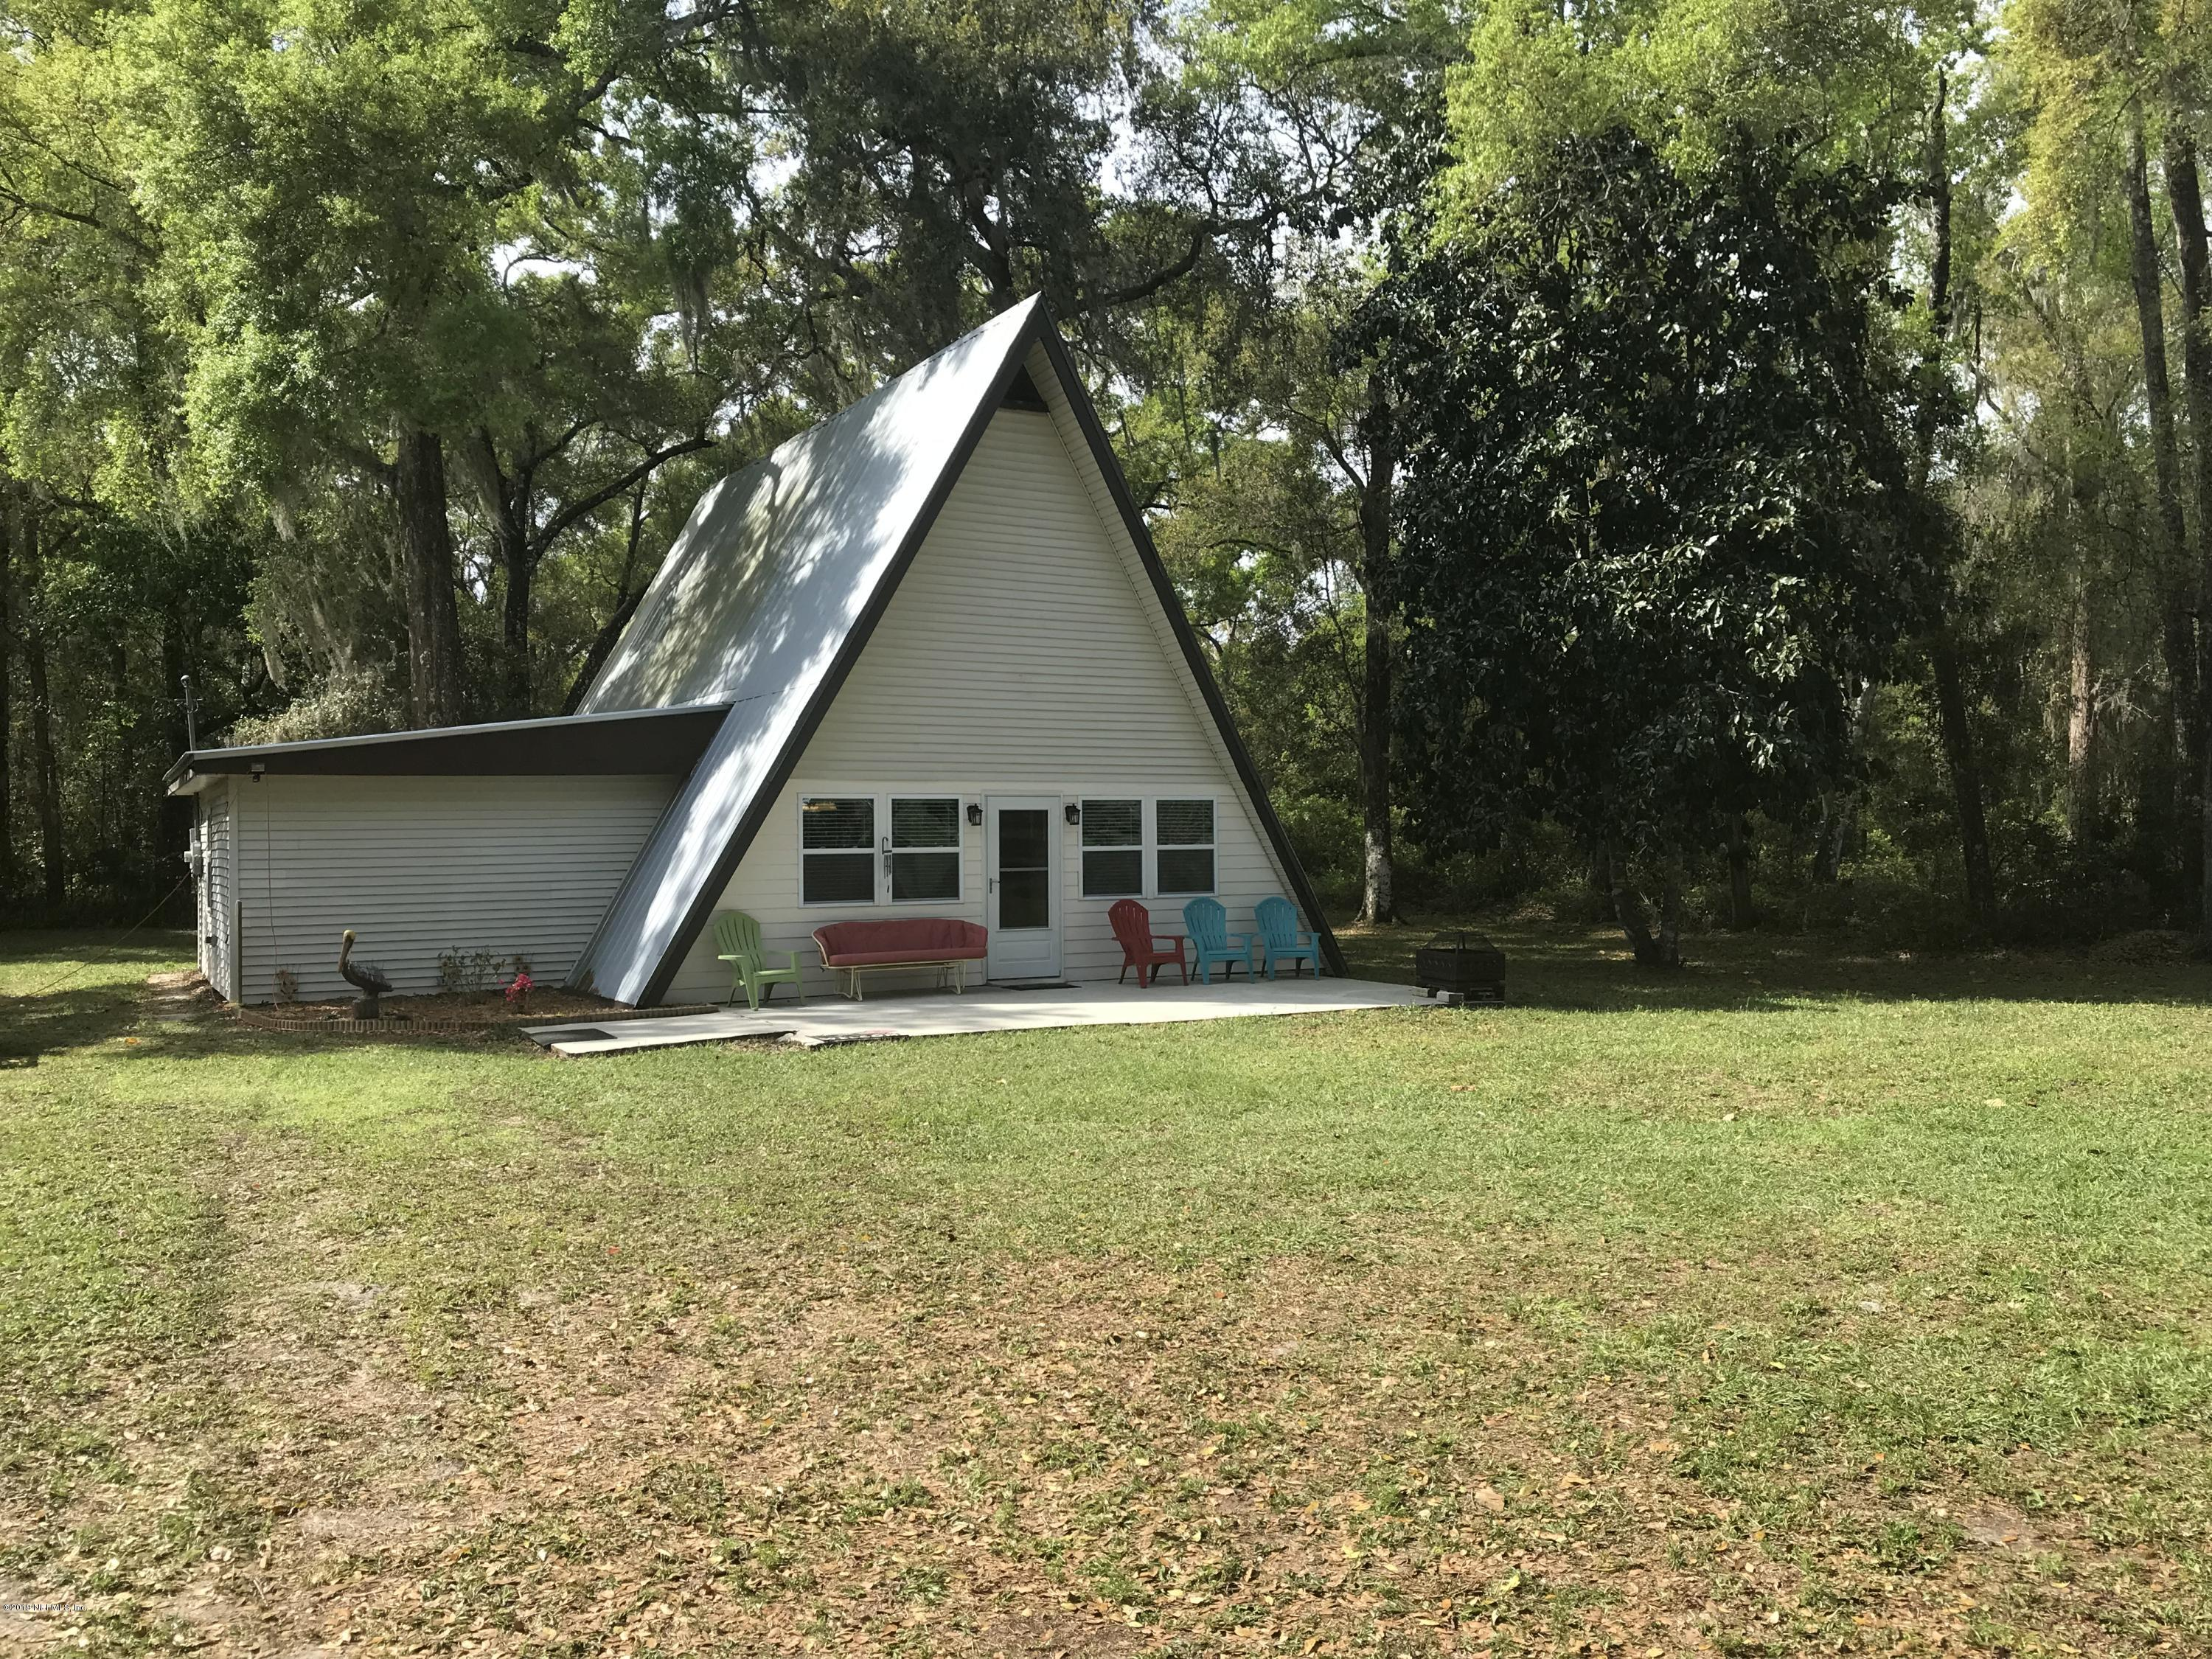 309 PLEASANT, POMONA PARK, FLORIDA 32181, 3 Bedrooms Bedrooms, ,2 BathroomsBathrooms,Residential - single family,For sale,PLEASANT,984892